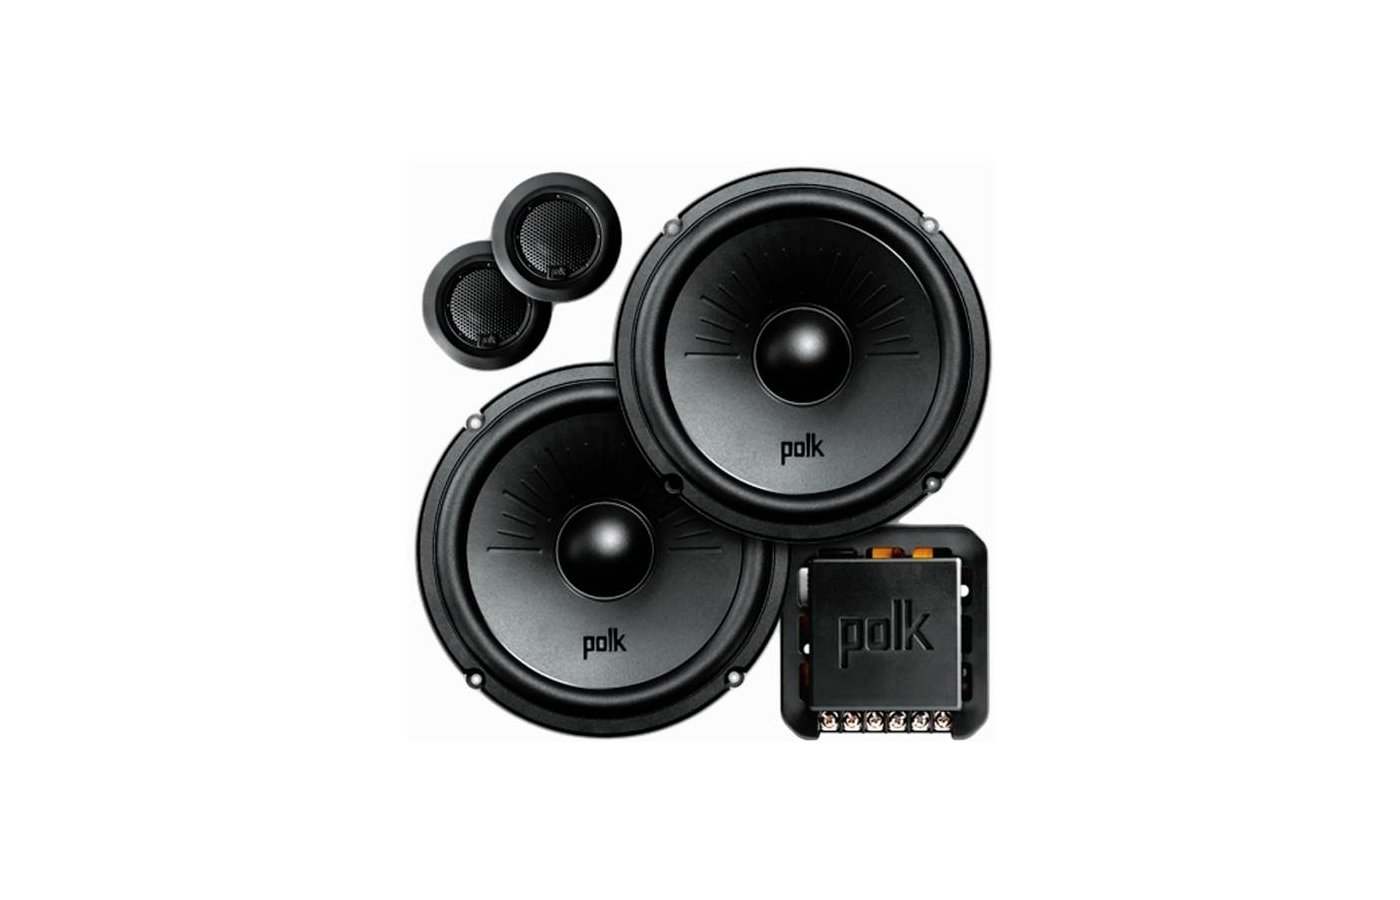 Колонки Polk Audio DXI 6501